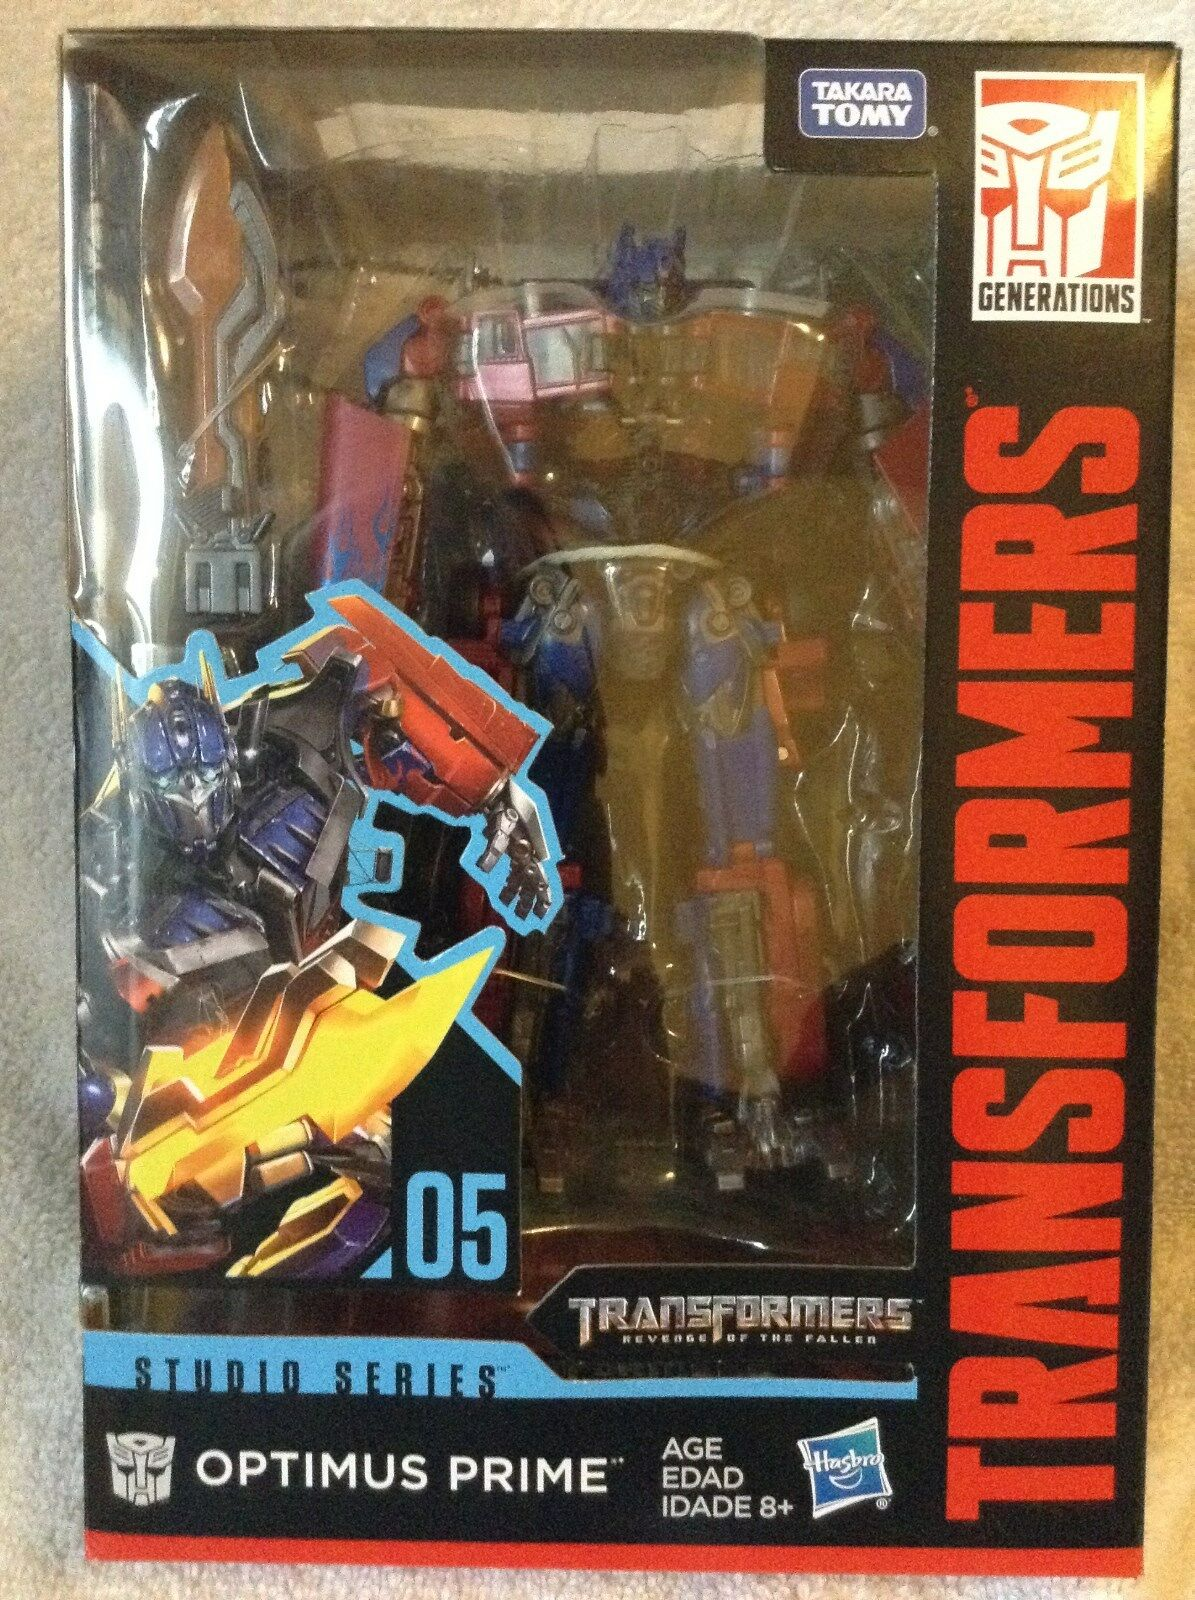 Transformers Studio Series Optimus Prime Hasbro MIB Hard to Find 2018